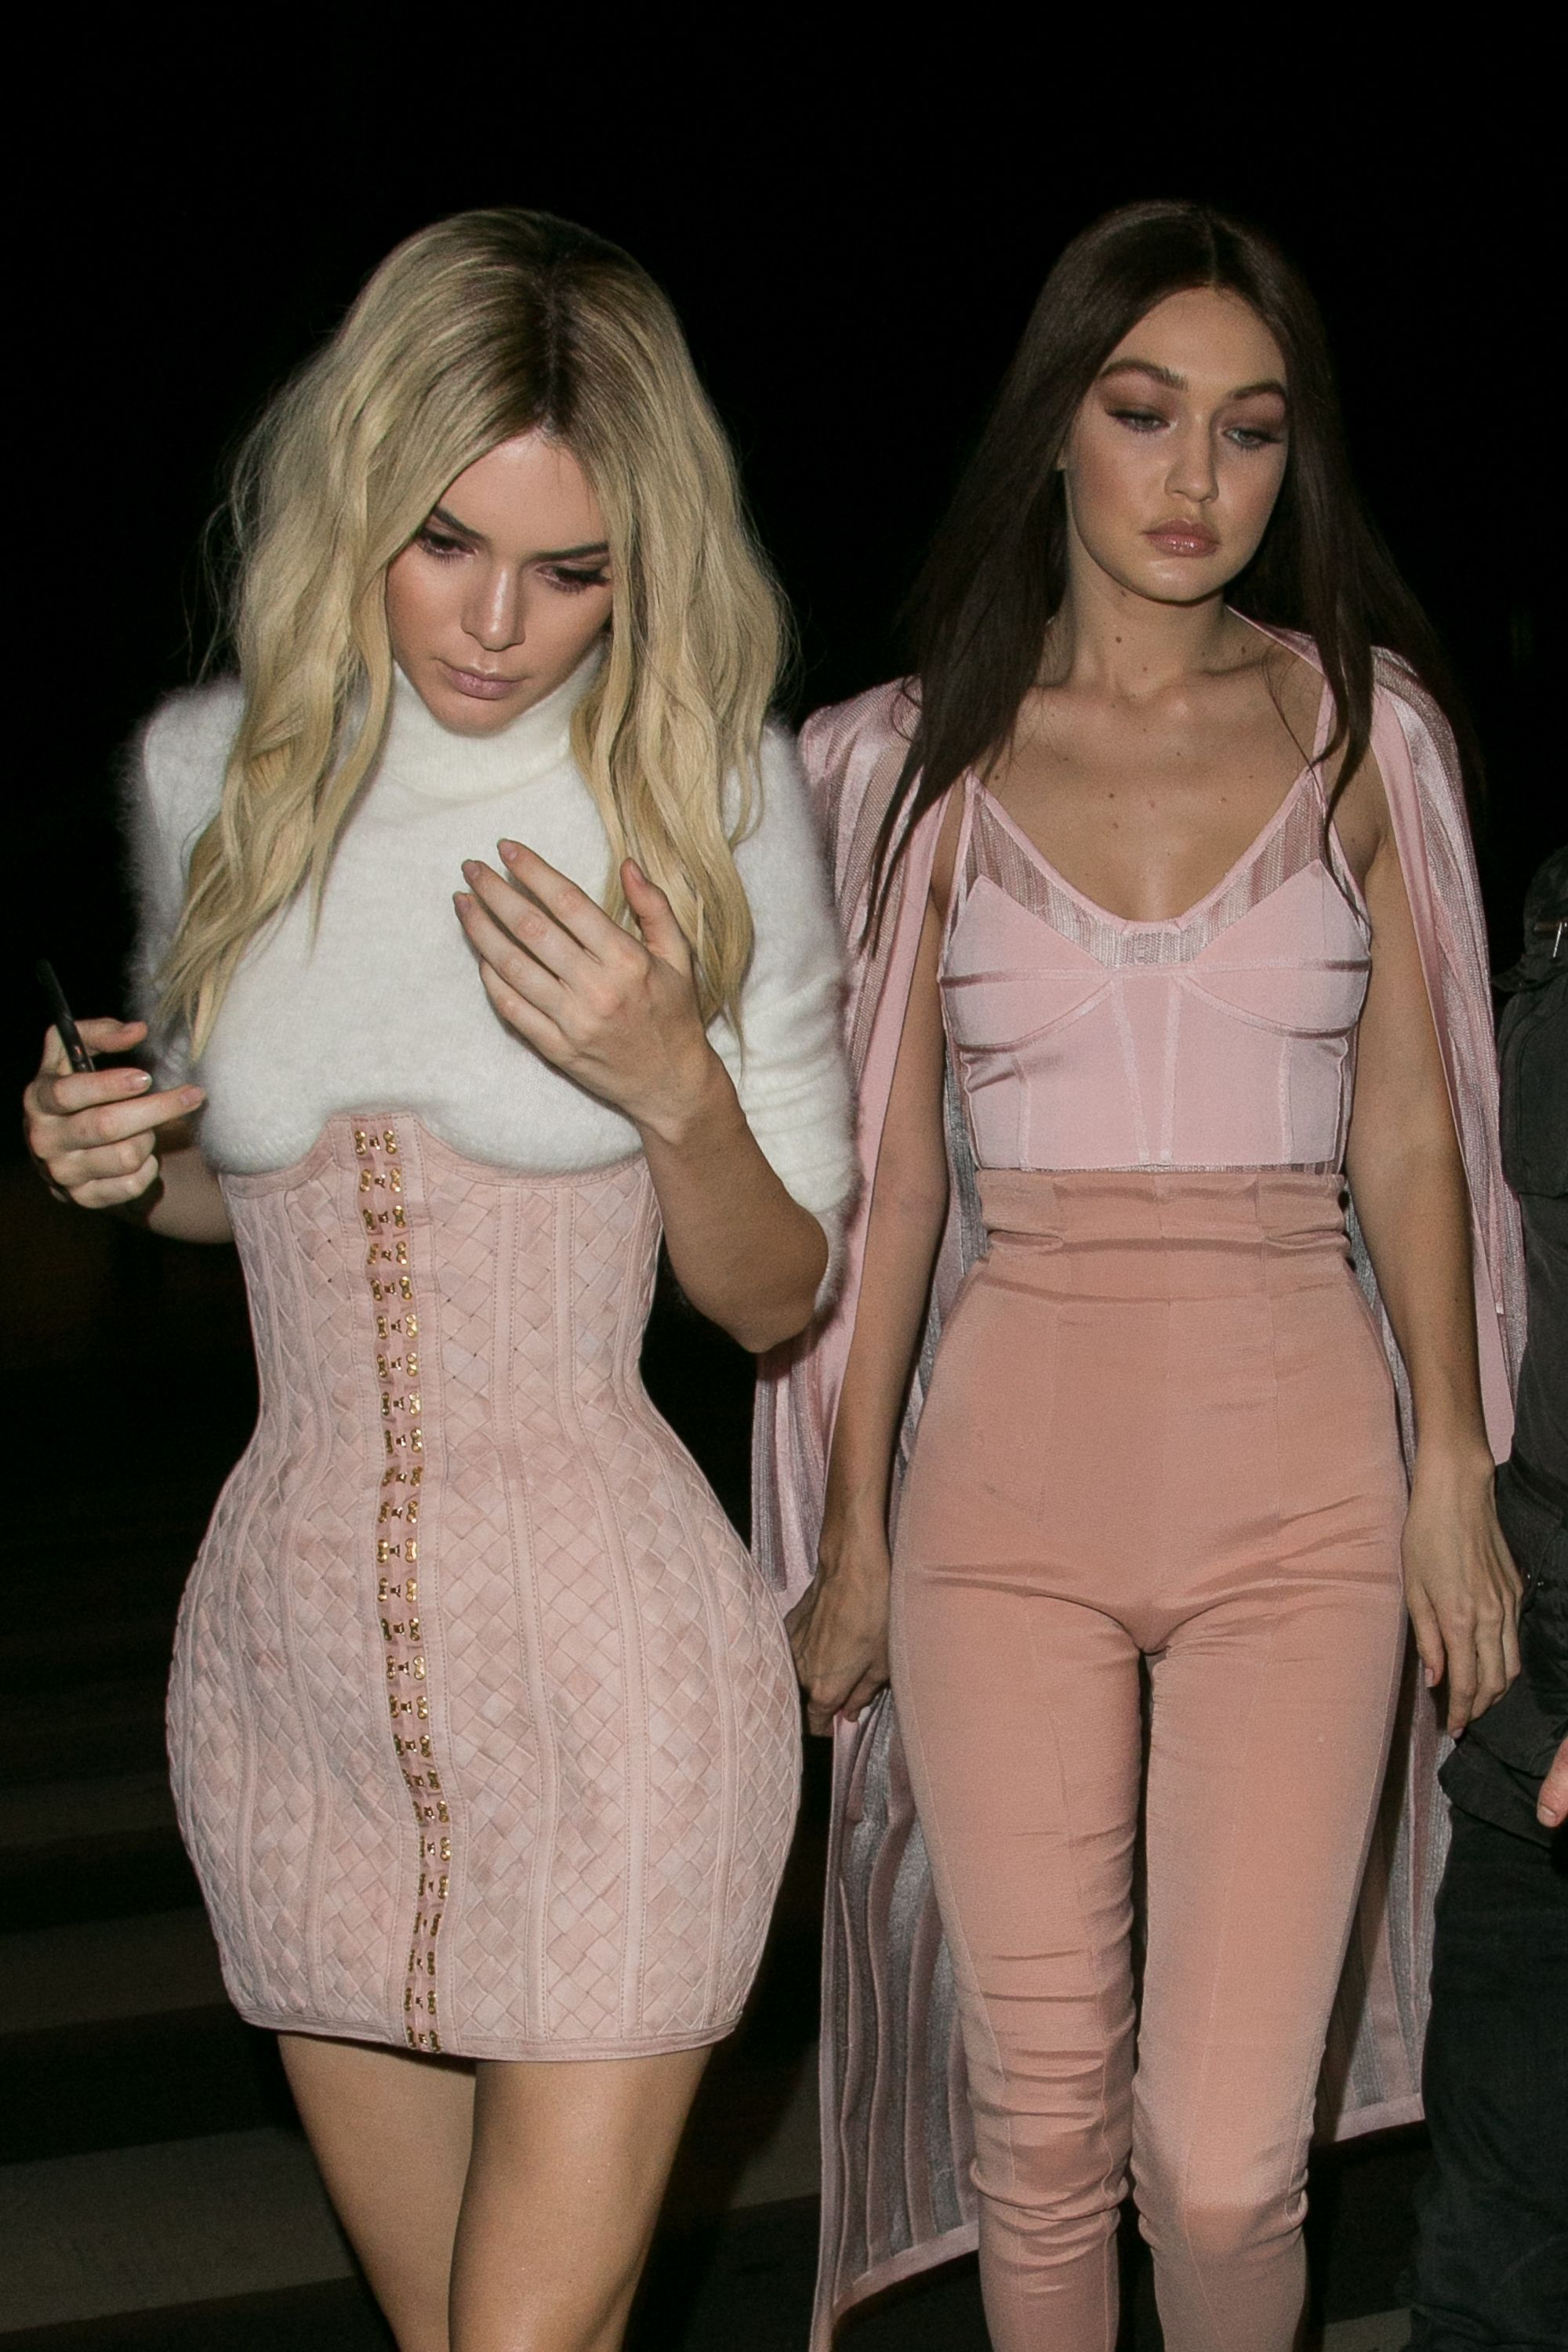 Kendall And Gigi Co Ordinate In Cute Pink Outfits For Balmain After